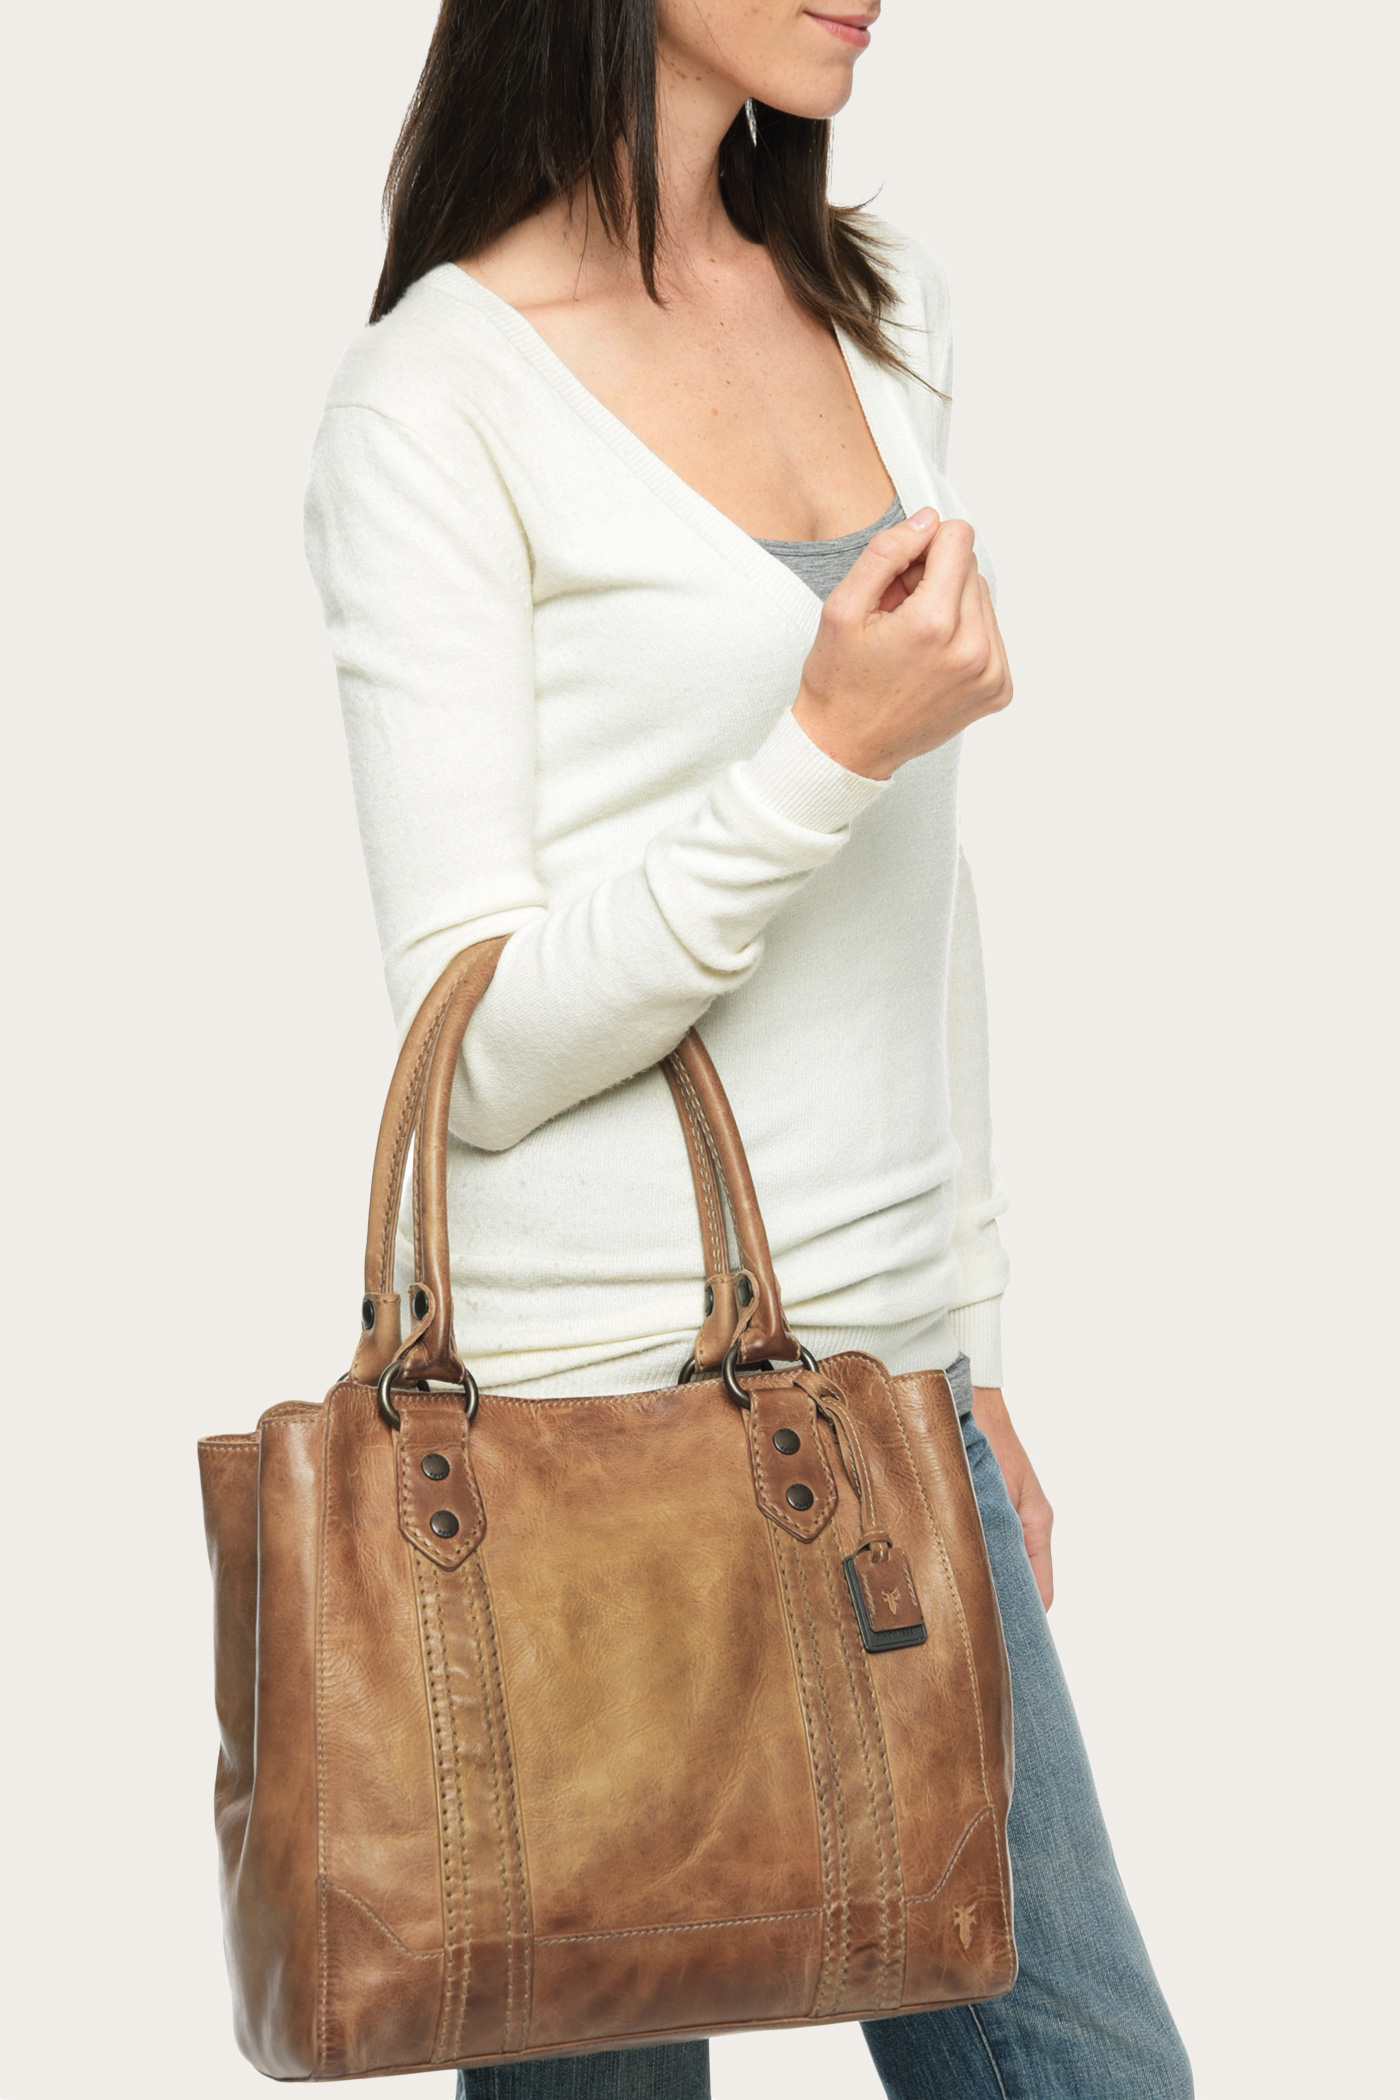 7d93a2233be8 Frye Melissa Tote in Brown - Lyst